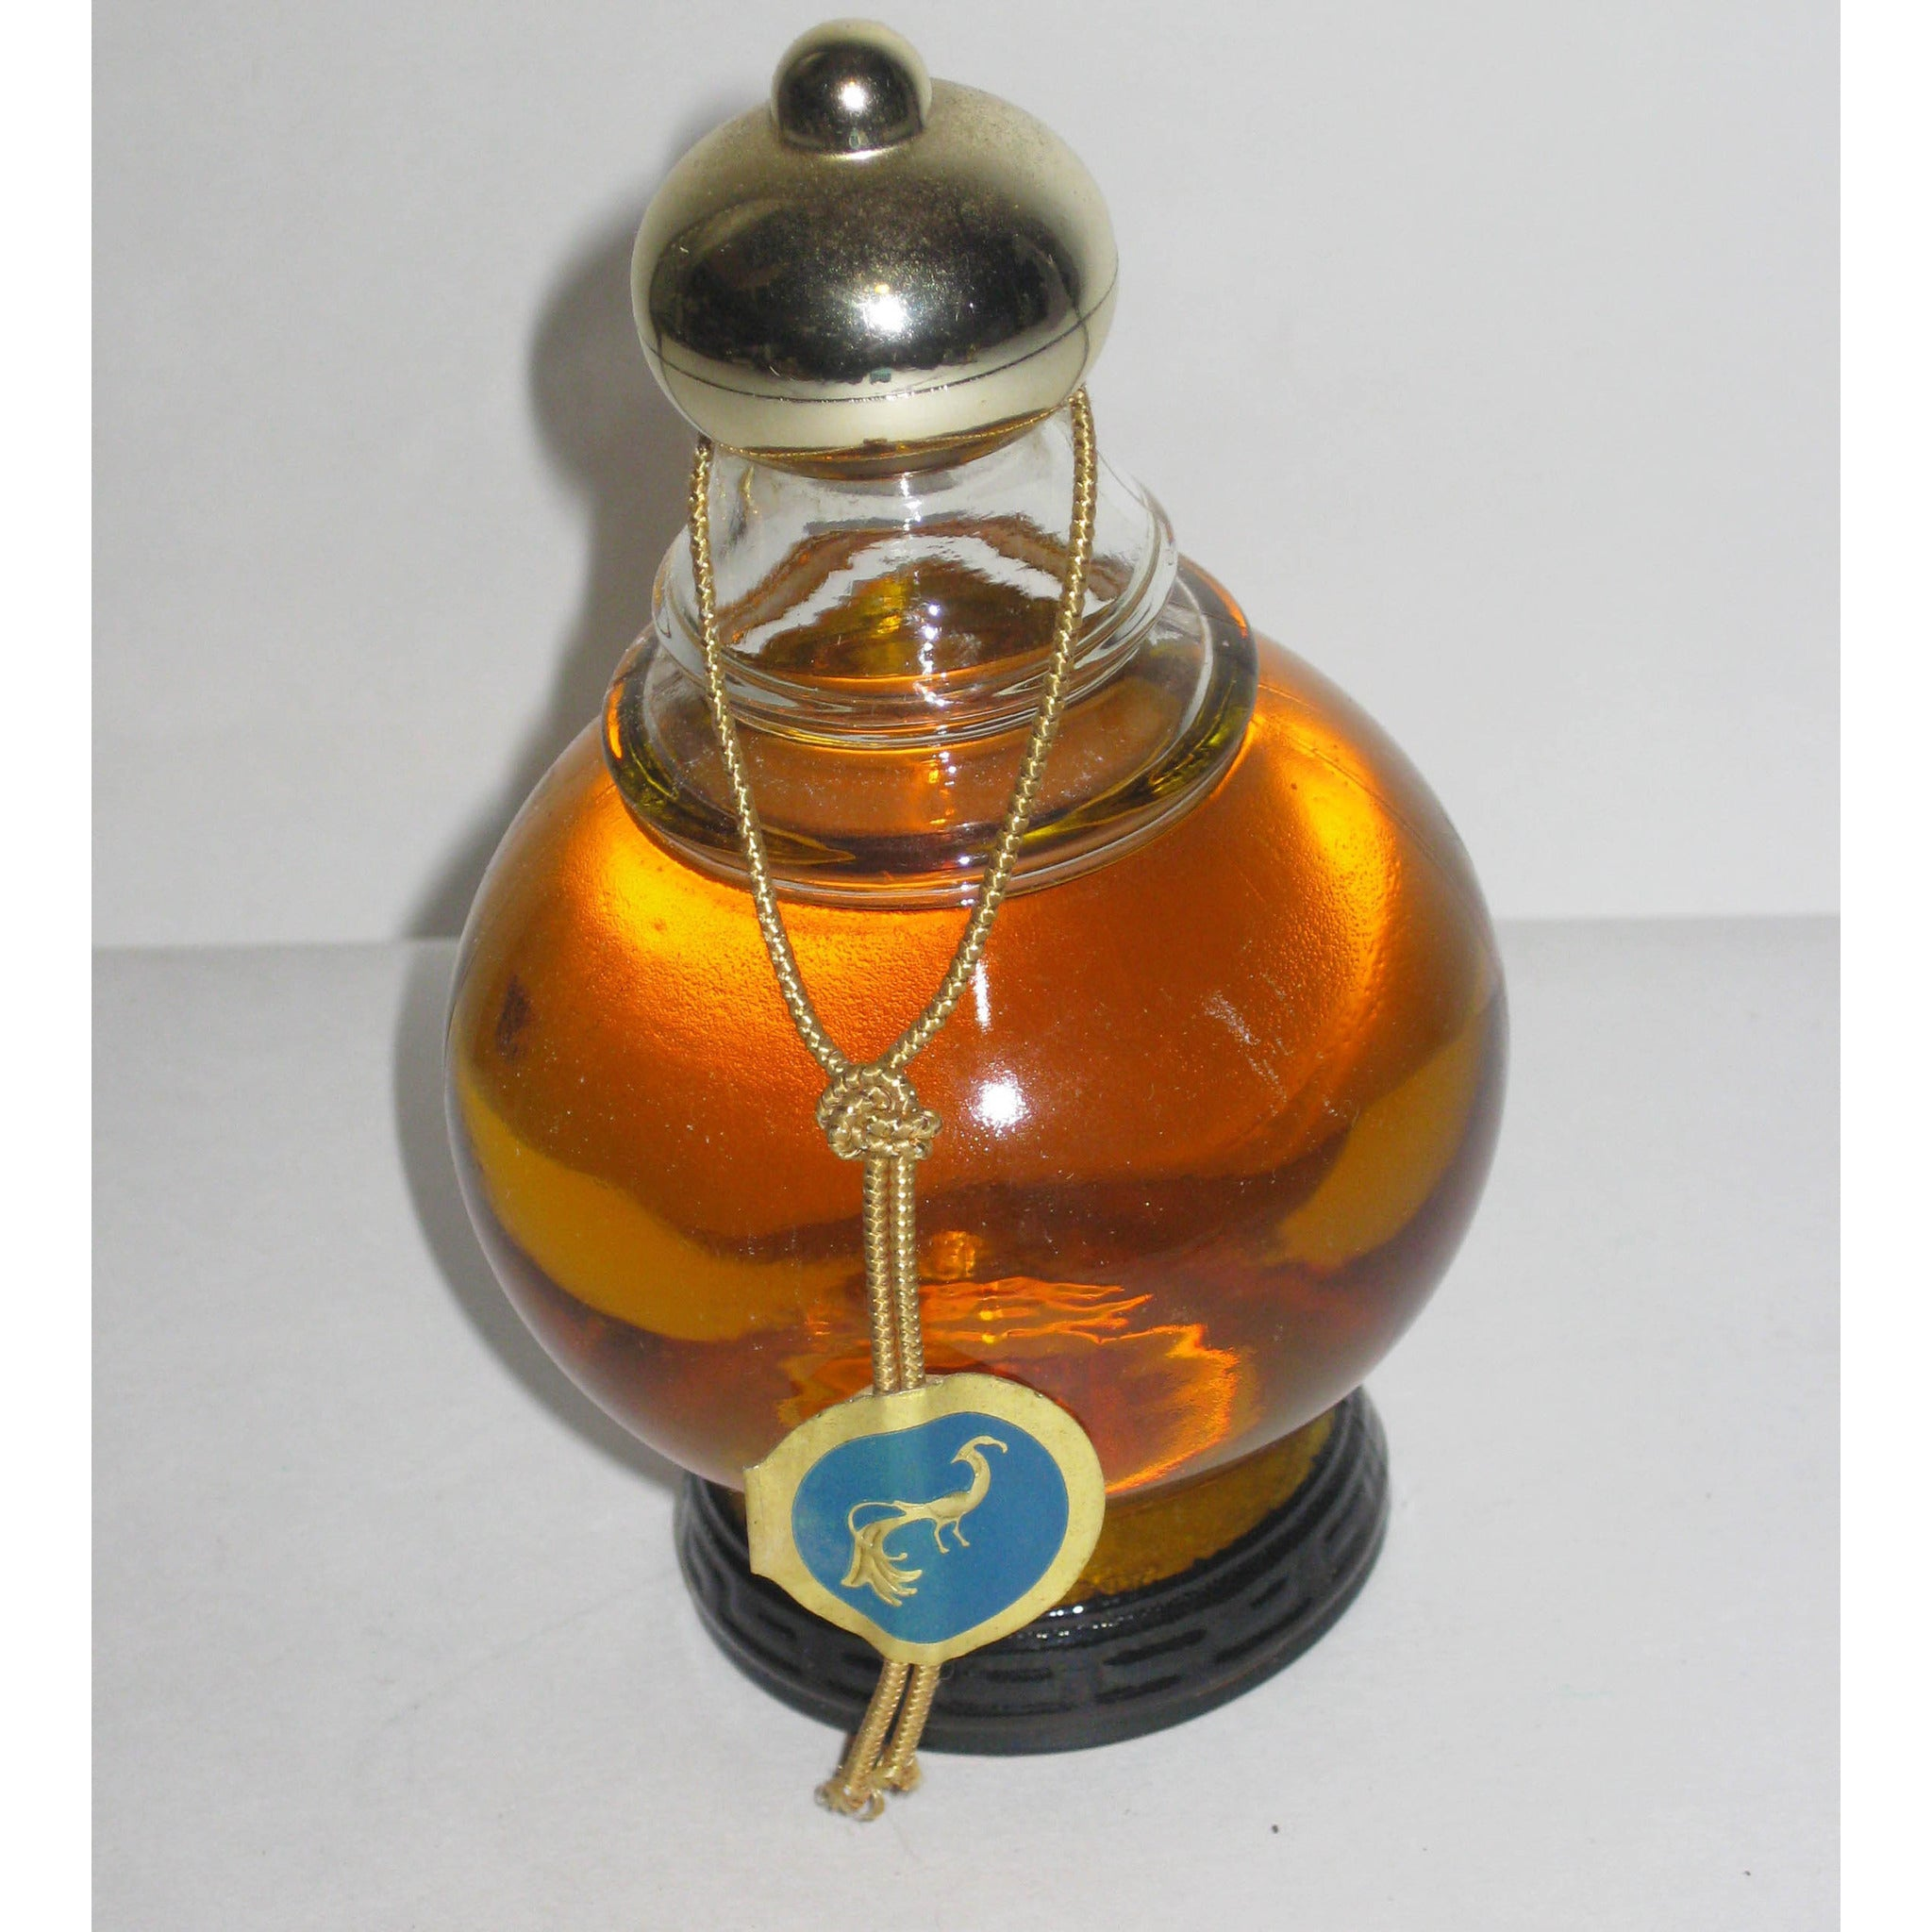 Vintage Avon Bird of Paradise Cologne